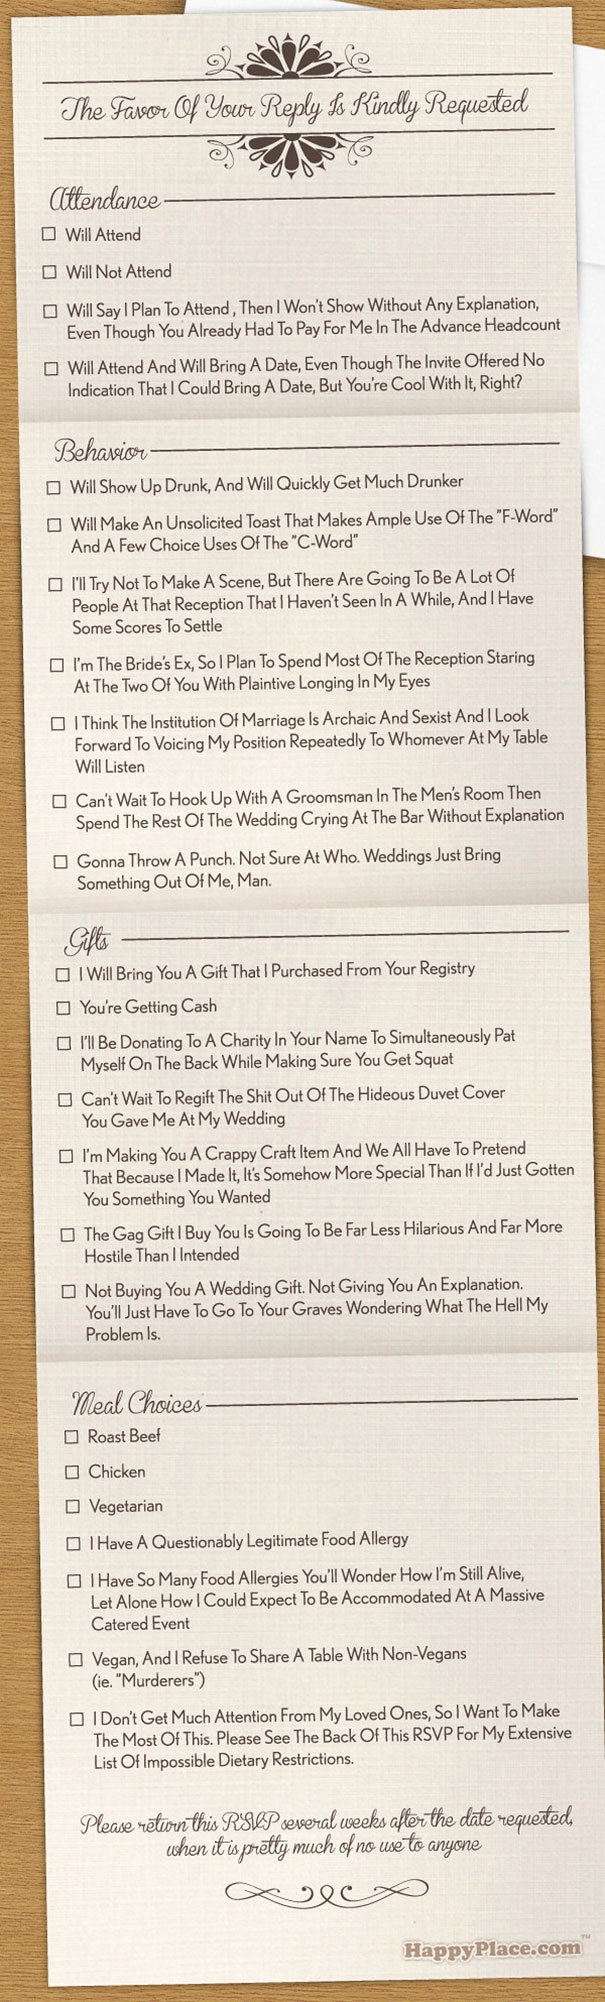 Witty Wedding Invitation Wording Unique 9 Hilarious Wedding Invitations that Simply Can't Be